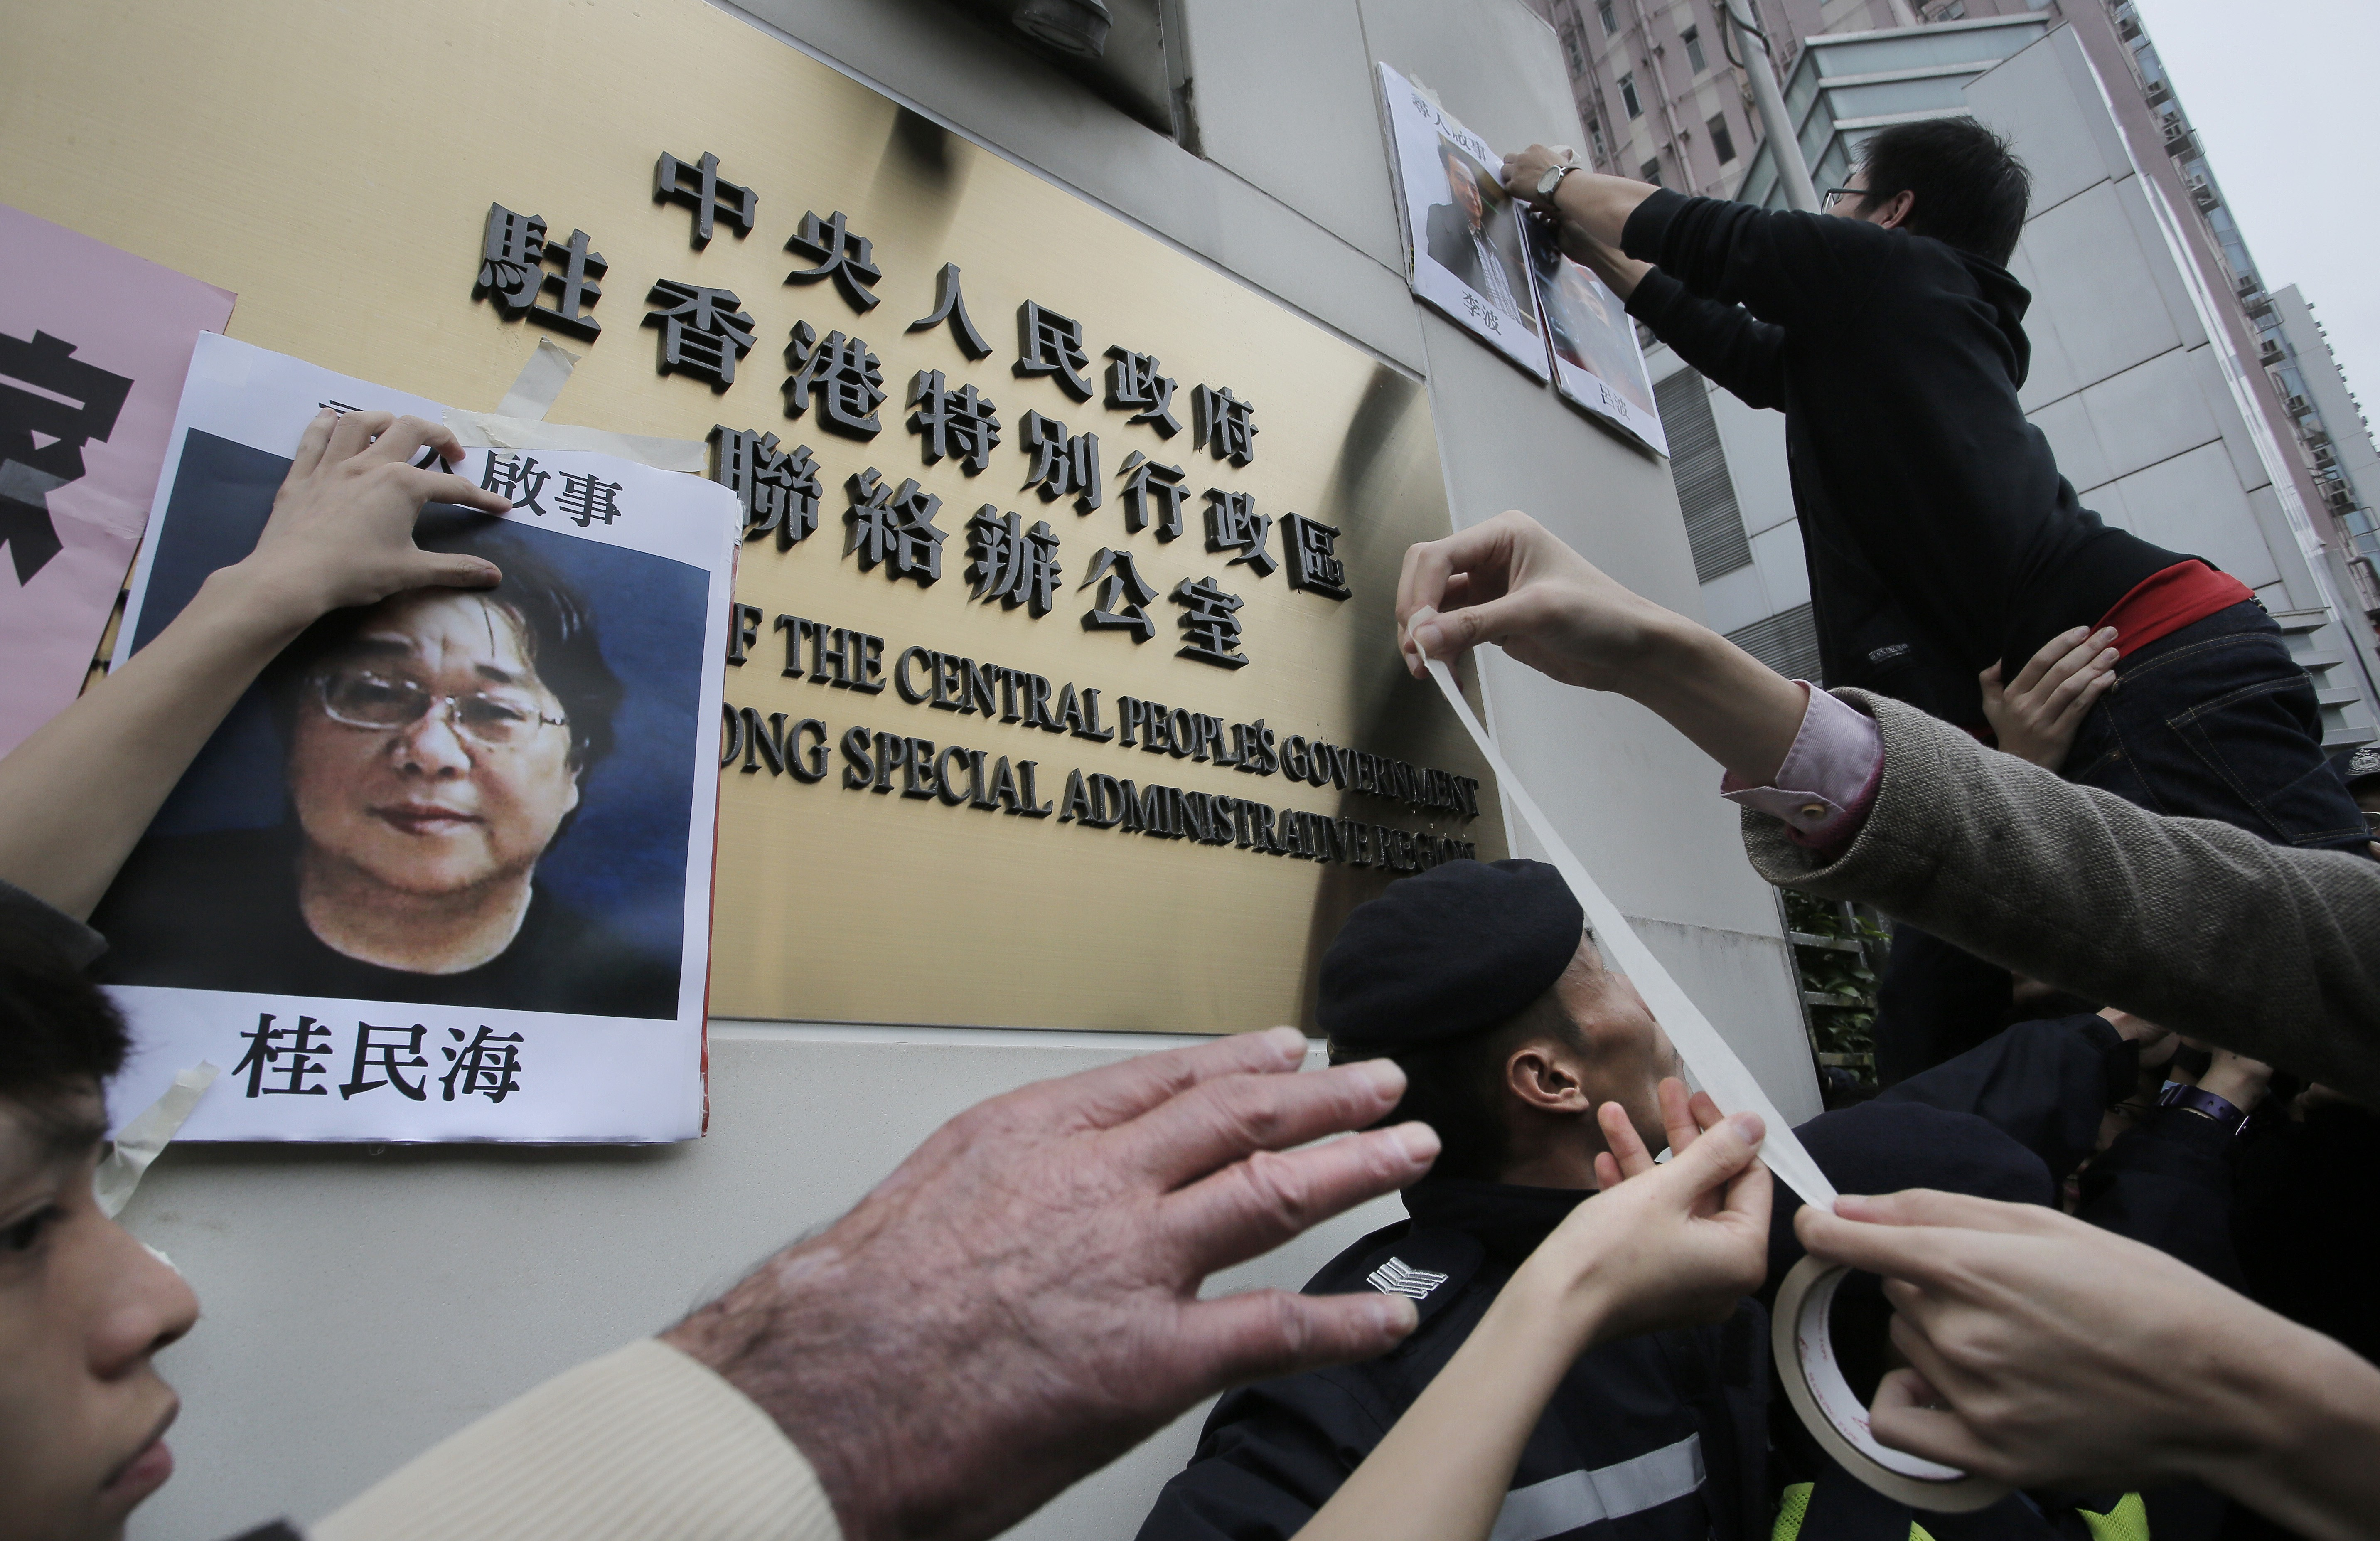 Protesters try to stick photos of missing booksellers during a protest outside the Liaison of the Central People's Government in Hong Kong, Sunday, Jan. 3, 2016. Hong Kong pro-democracy lawmakers say they'll press the government for answers after a fifth employee of a publisher specializing in books critical of China's ruling communists went missing. (AP Photo/Vincent Yu)